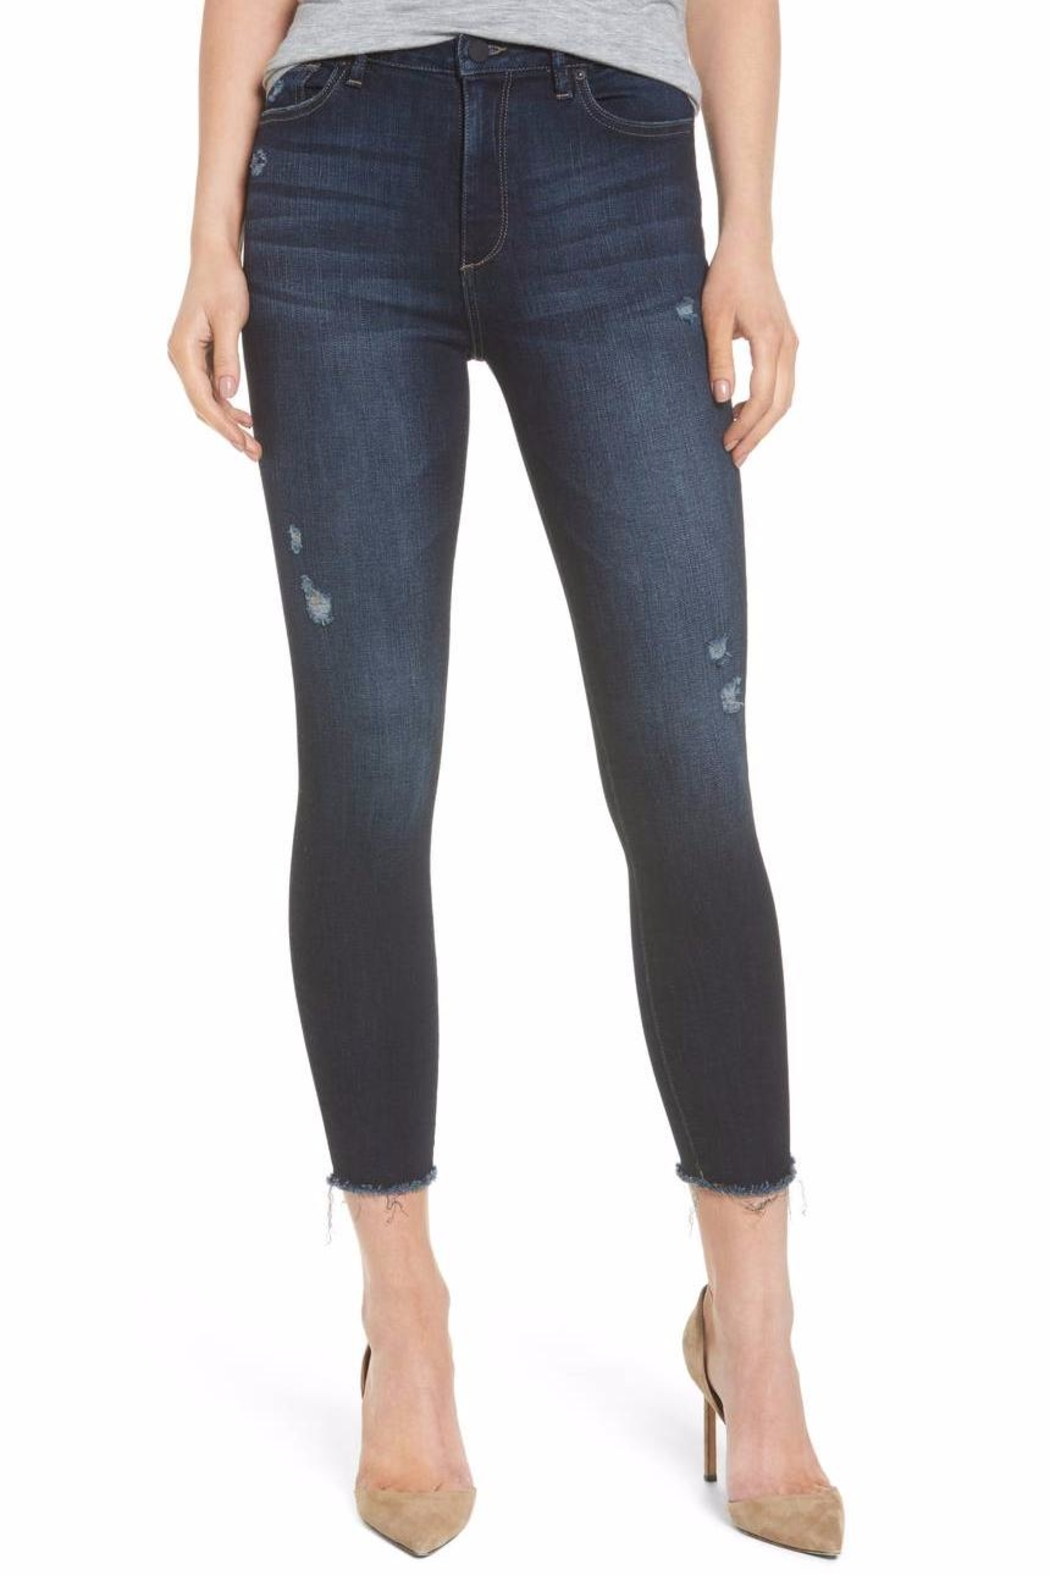 DL1961 Chrissy High Rise Jeans - Main Image